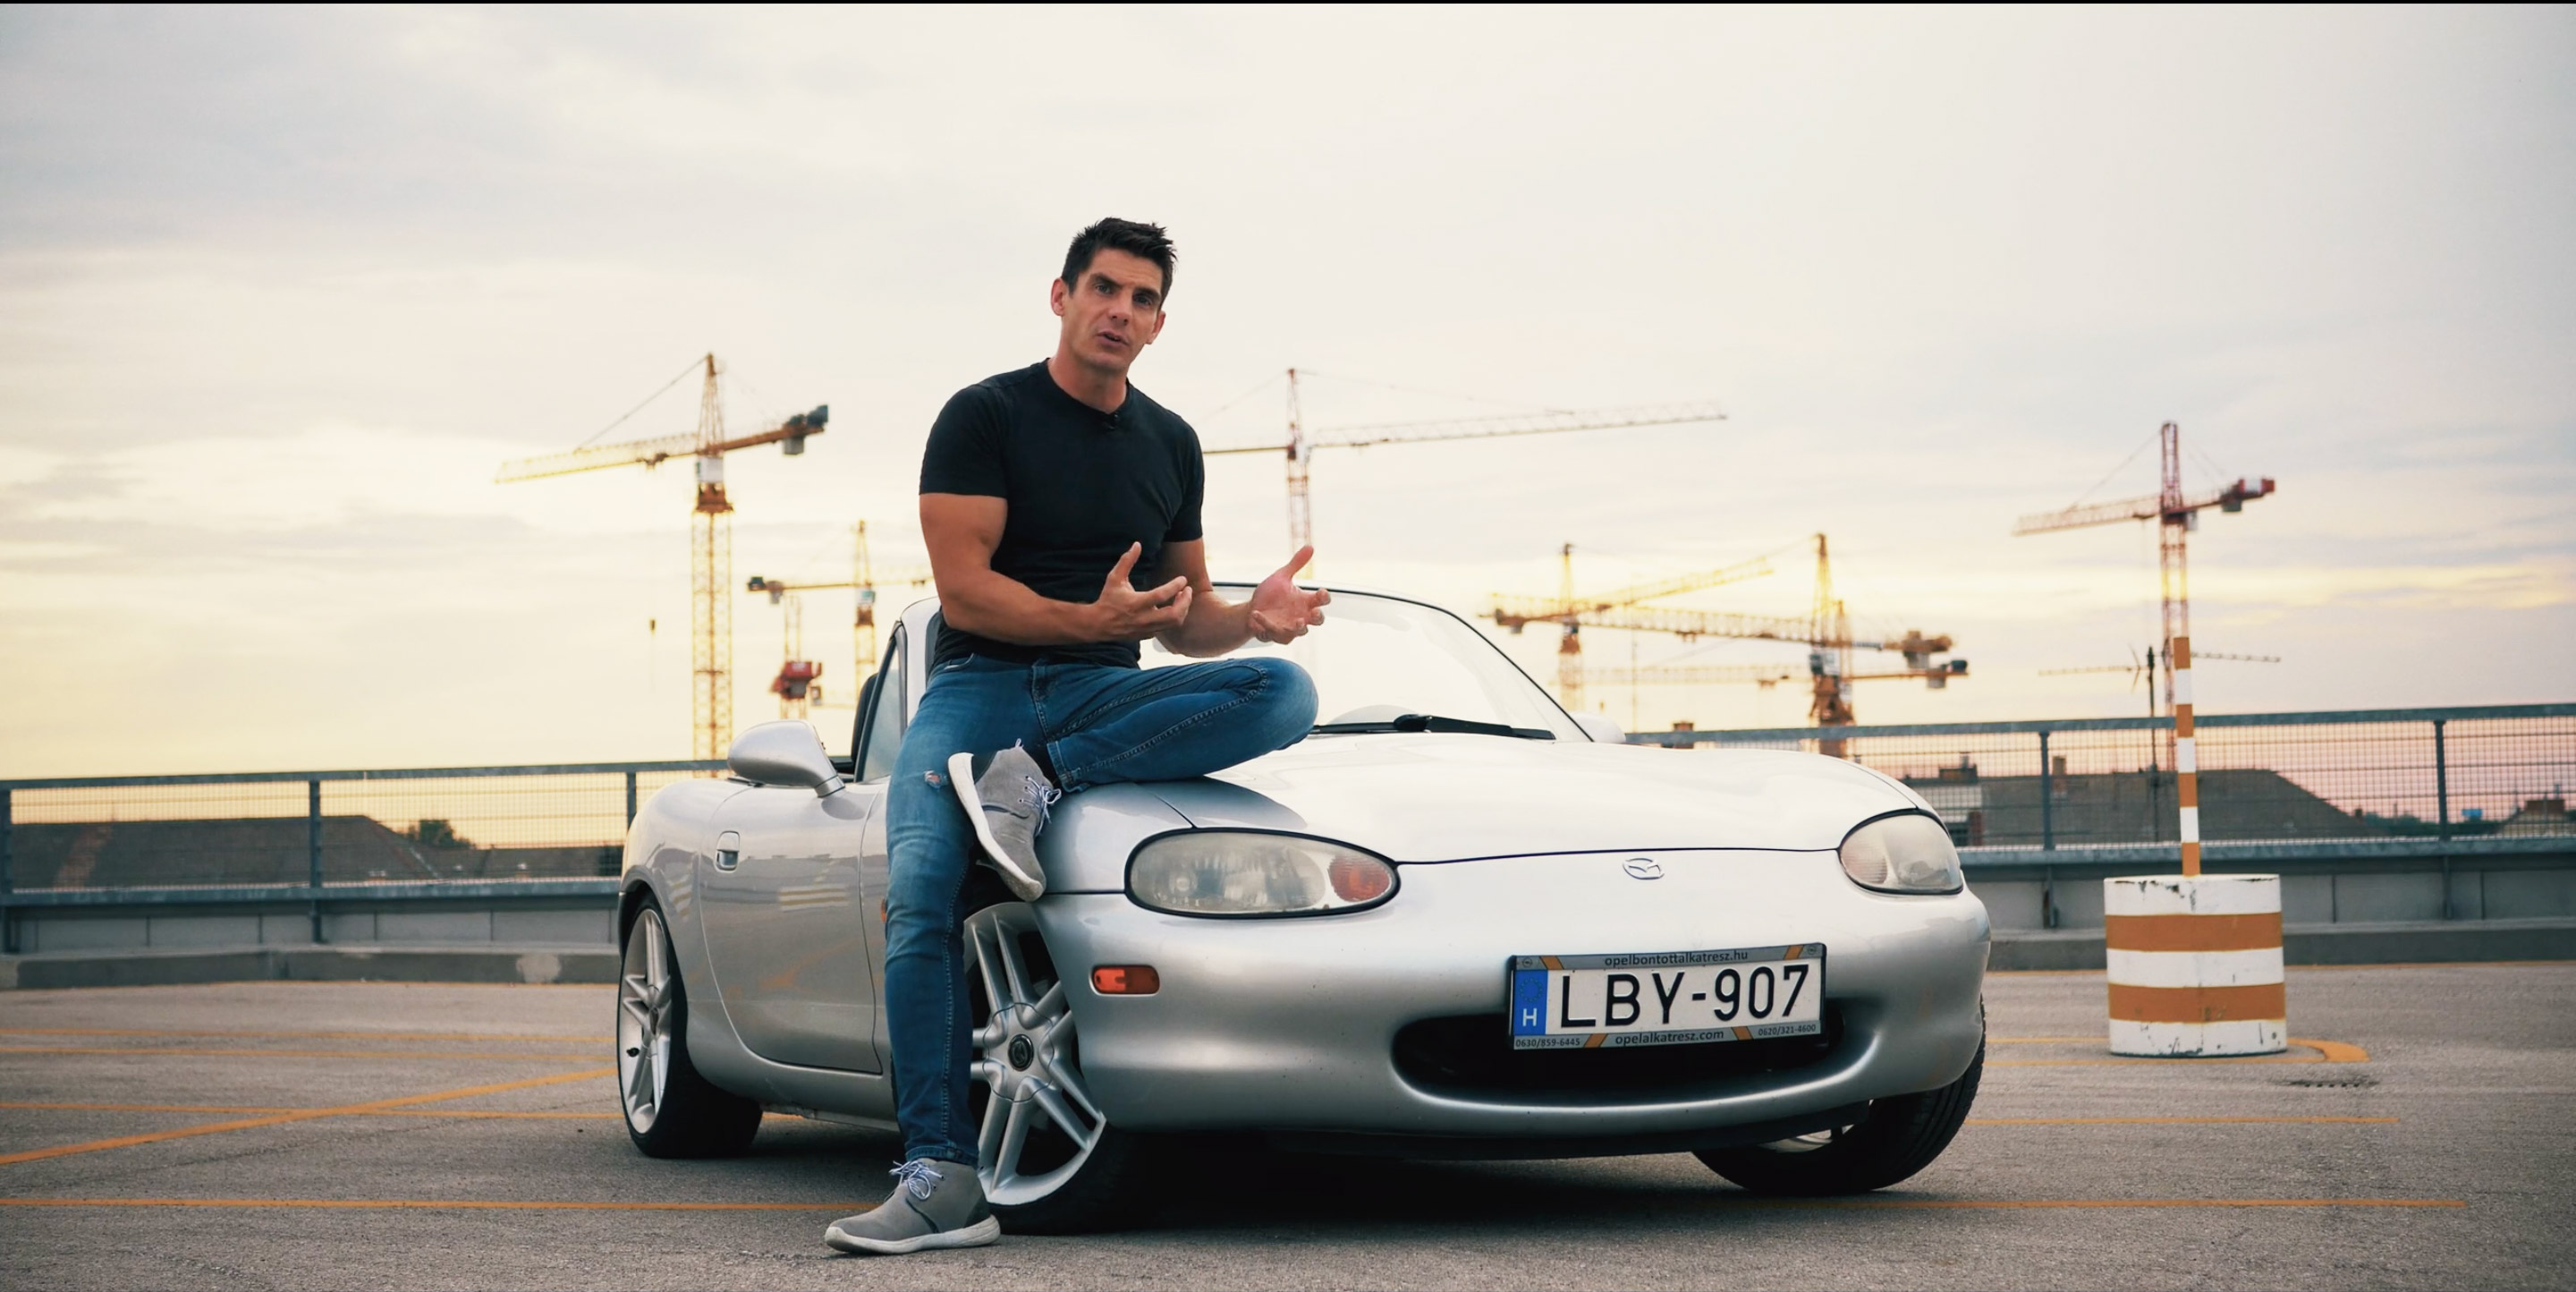 alex-muir-with-mx5-miata-on-roof